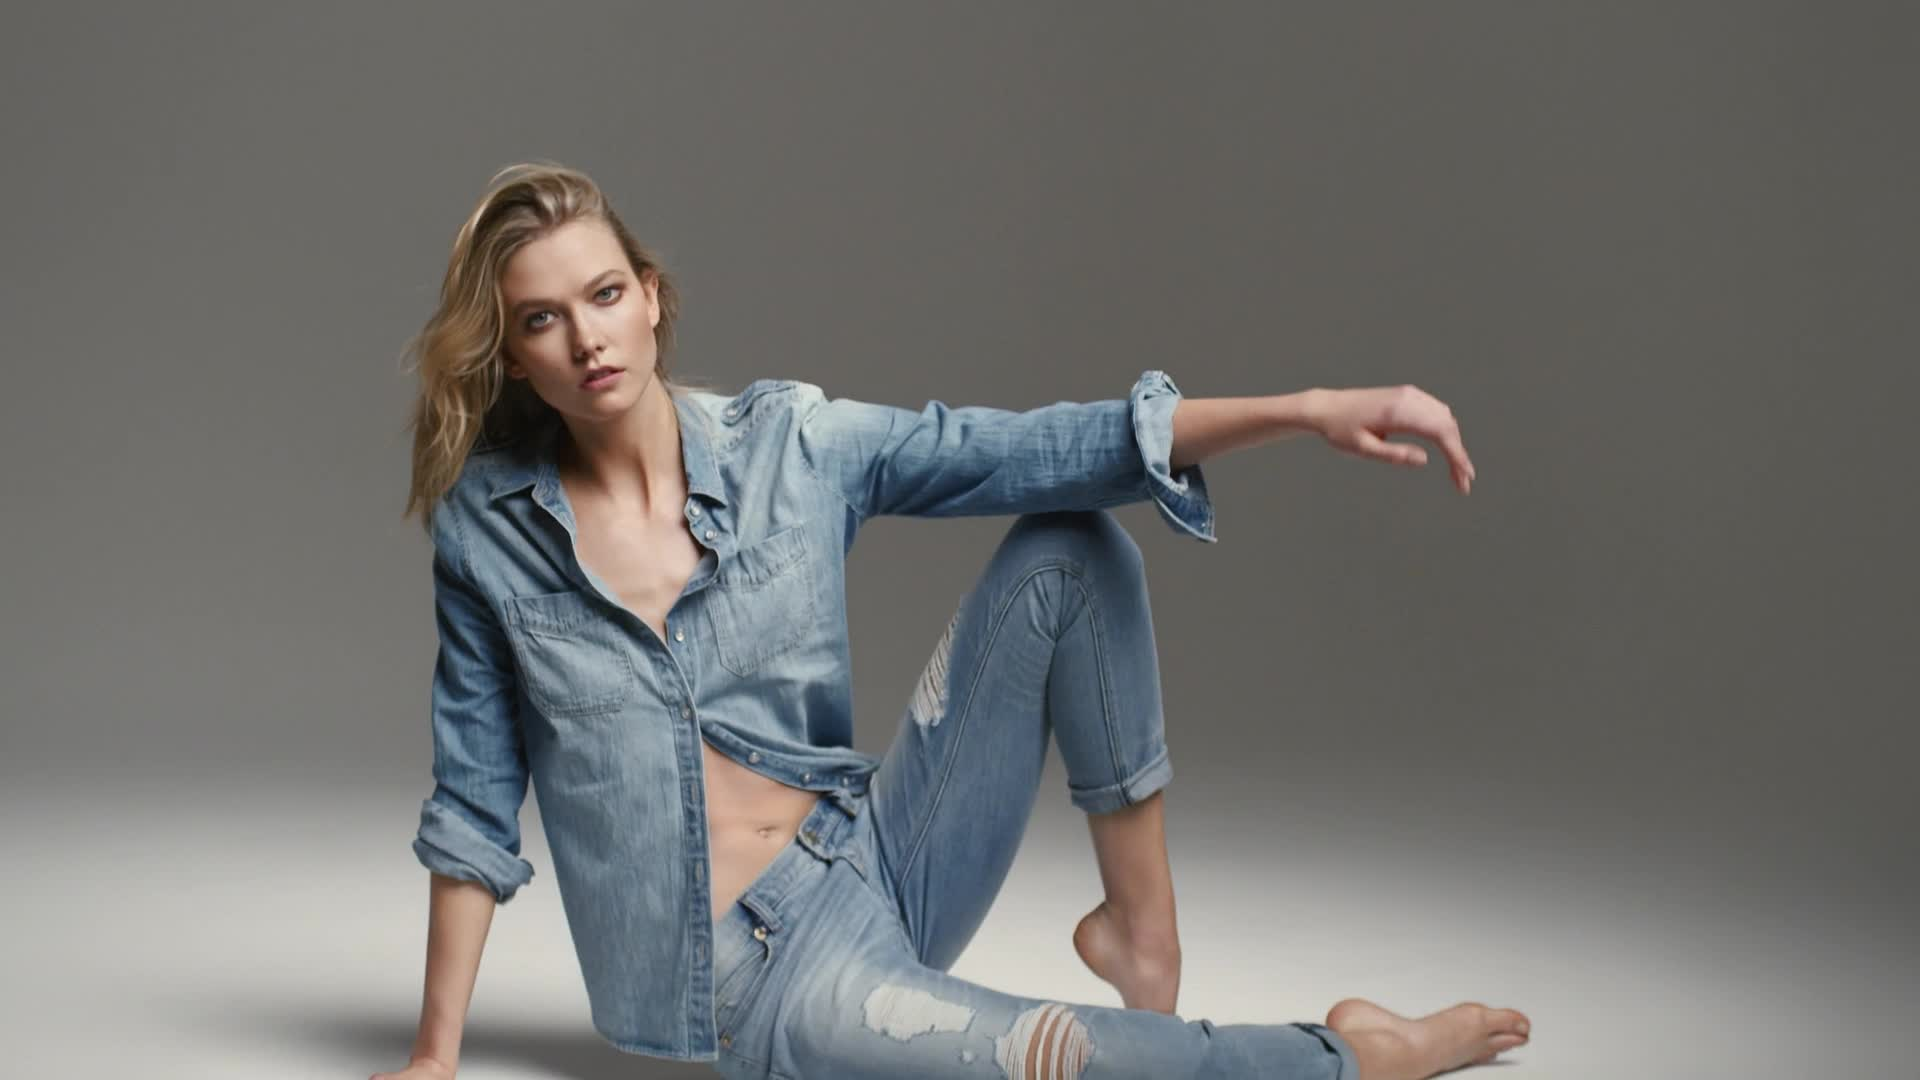 Karlie Kloss is the New Face of EXPRESS 'Fit for You' Denim Campaign